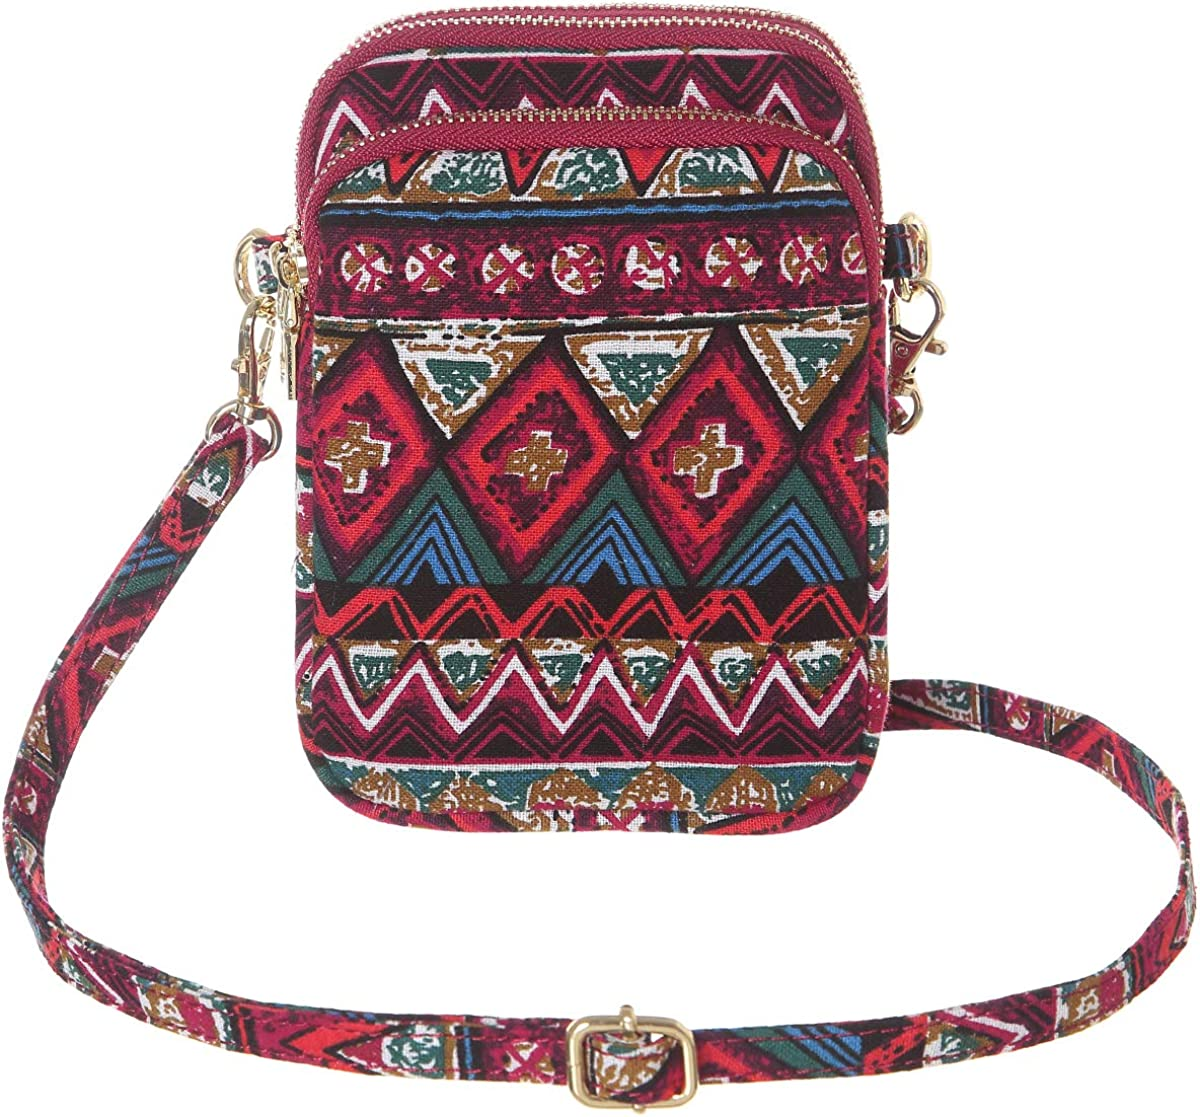 HAIDEXI Lightweight Small Crossbody Ranking TOP15 Special Campaign bags Trave Phone Cell Purses